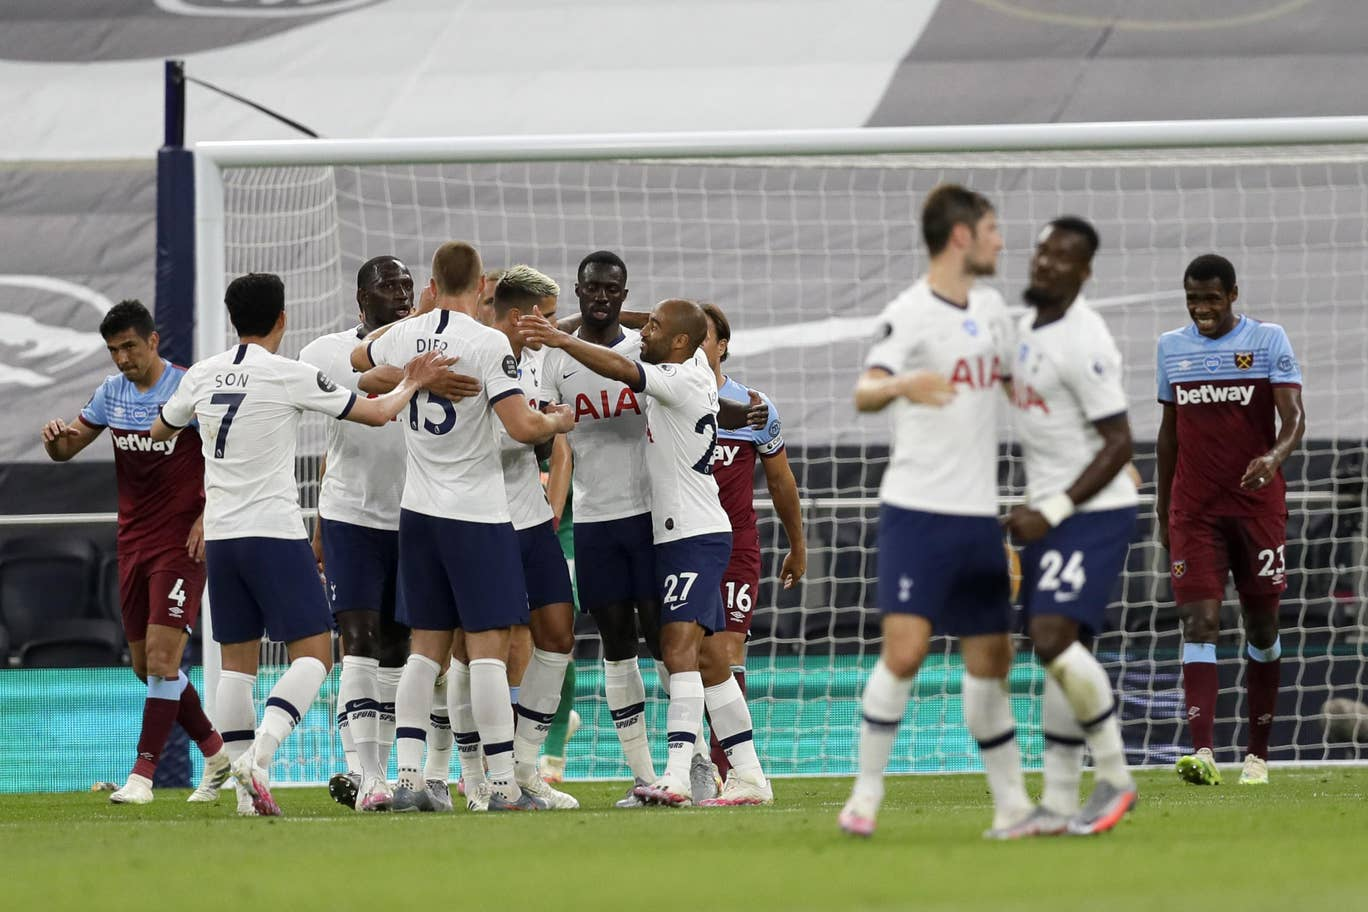 Tottenham beat West Ham United last time out